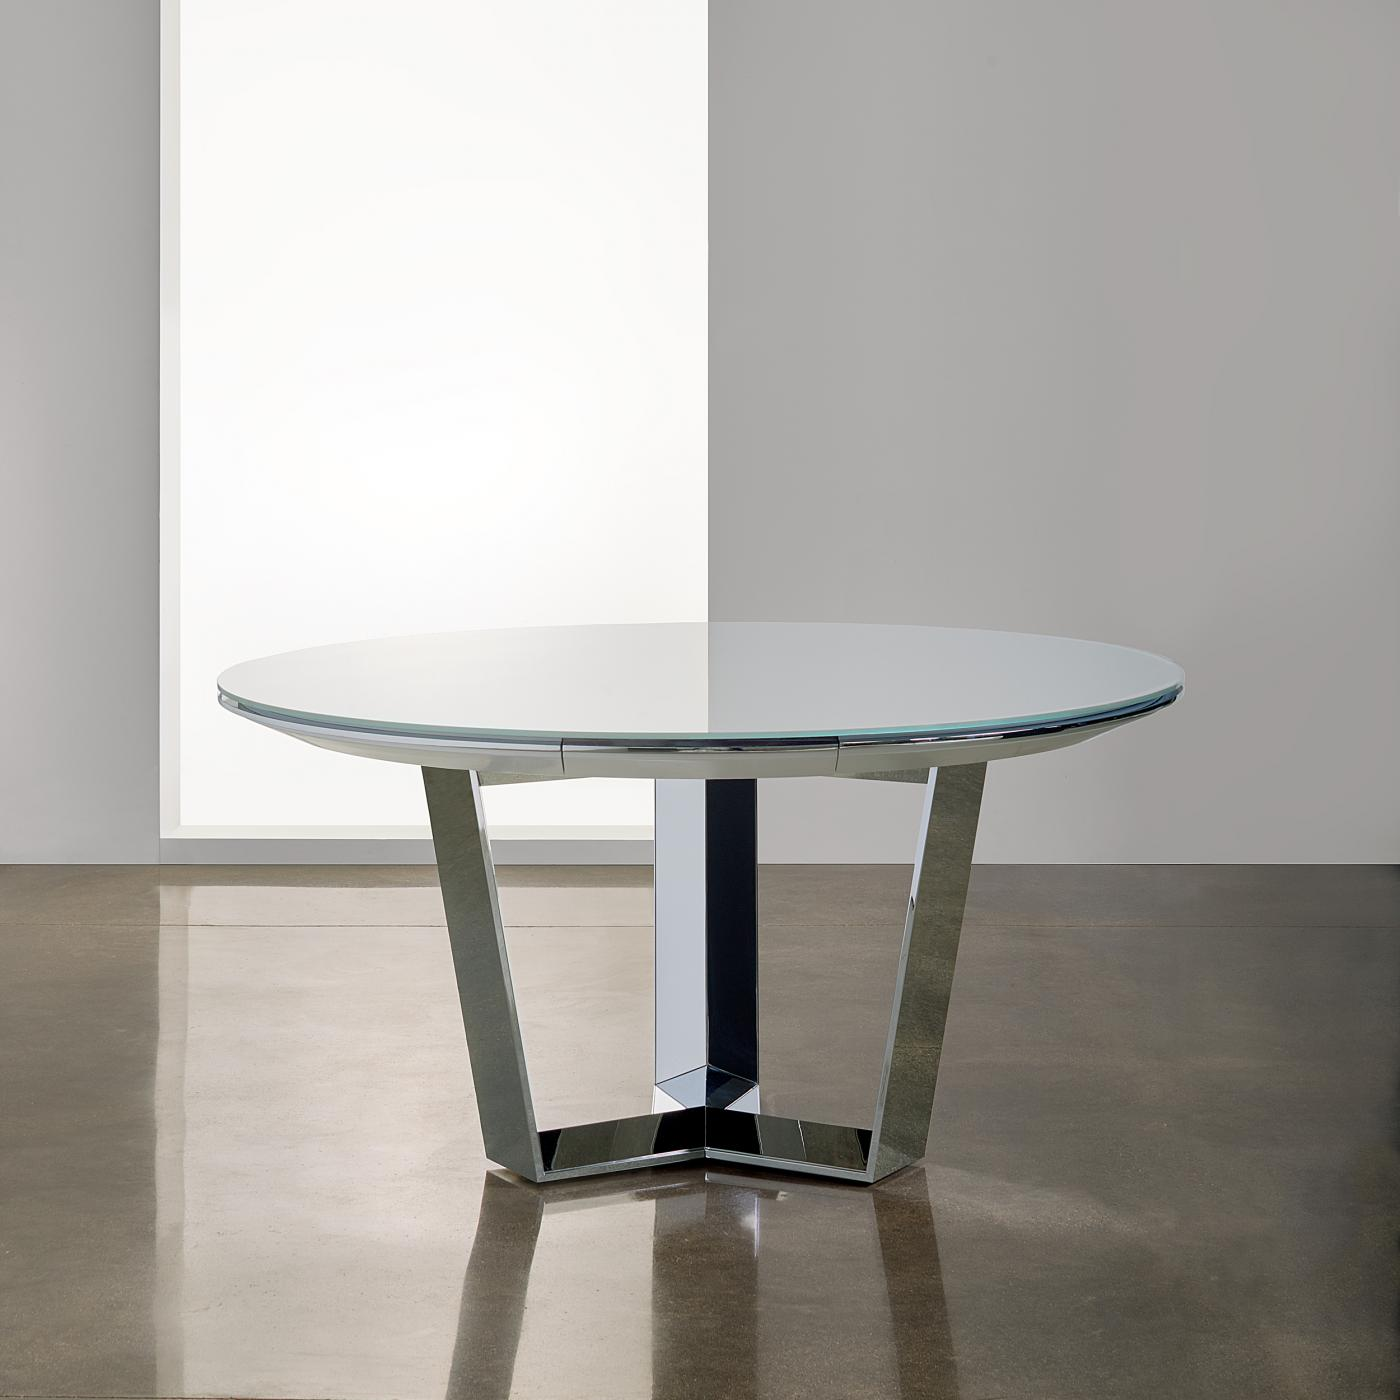 Beautiful and functional, the Mesa Triad table is thoughtfully-engineered with cabling cleanly concealed within the metal base.